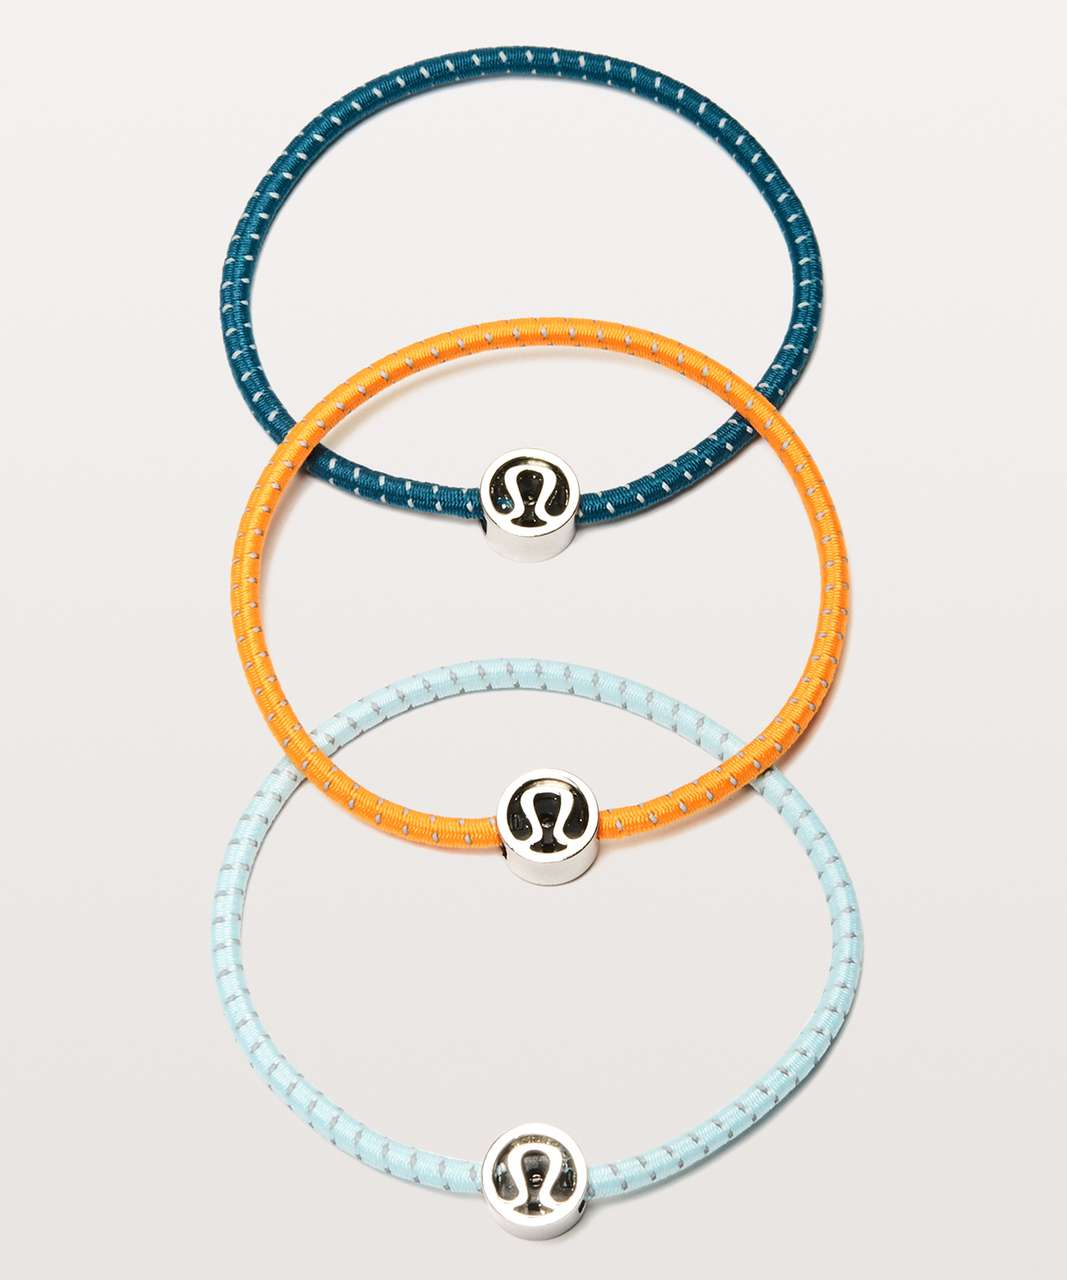 Lululemon Glow On Hair Ties - Blue Glow / Vivid Amber / Pacific Teal